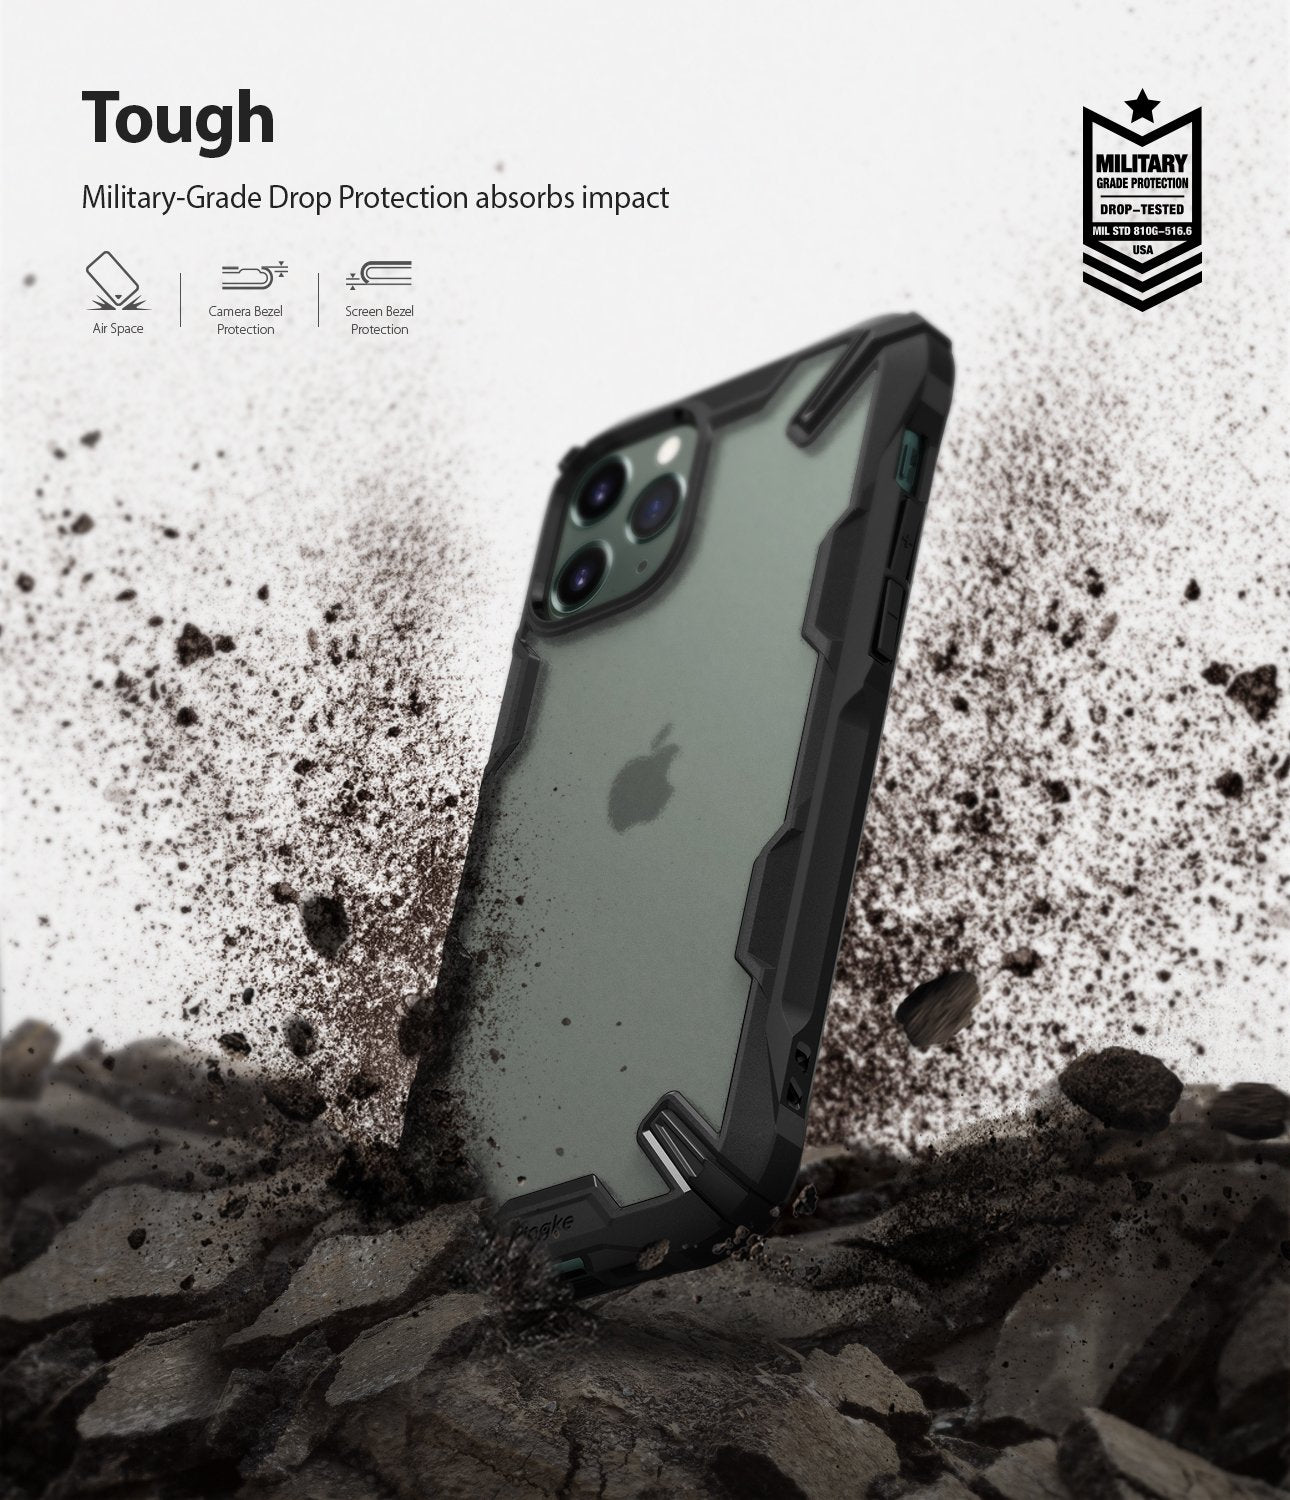 Ringke Fusion-X Matte Designed Case for iPhone 11 Pro Max military grade drop protection